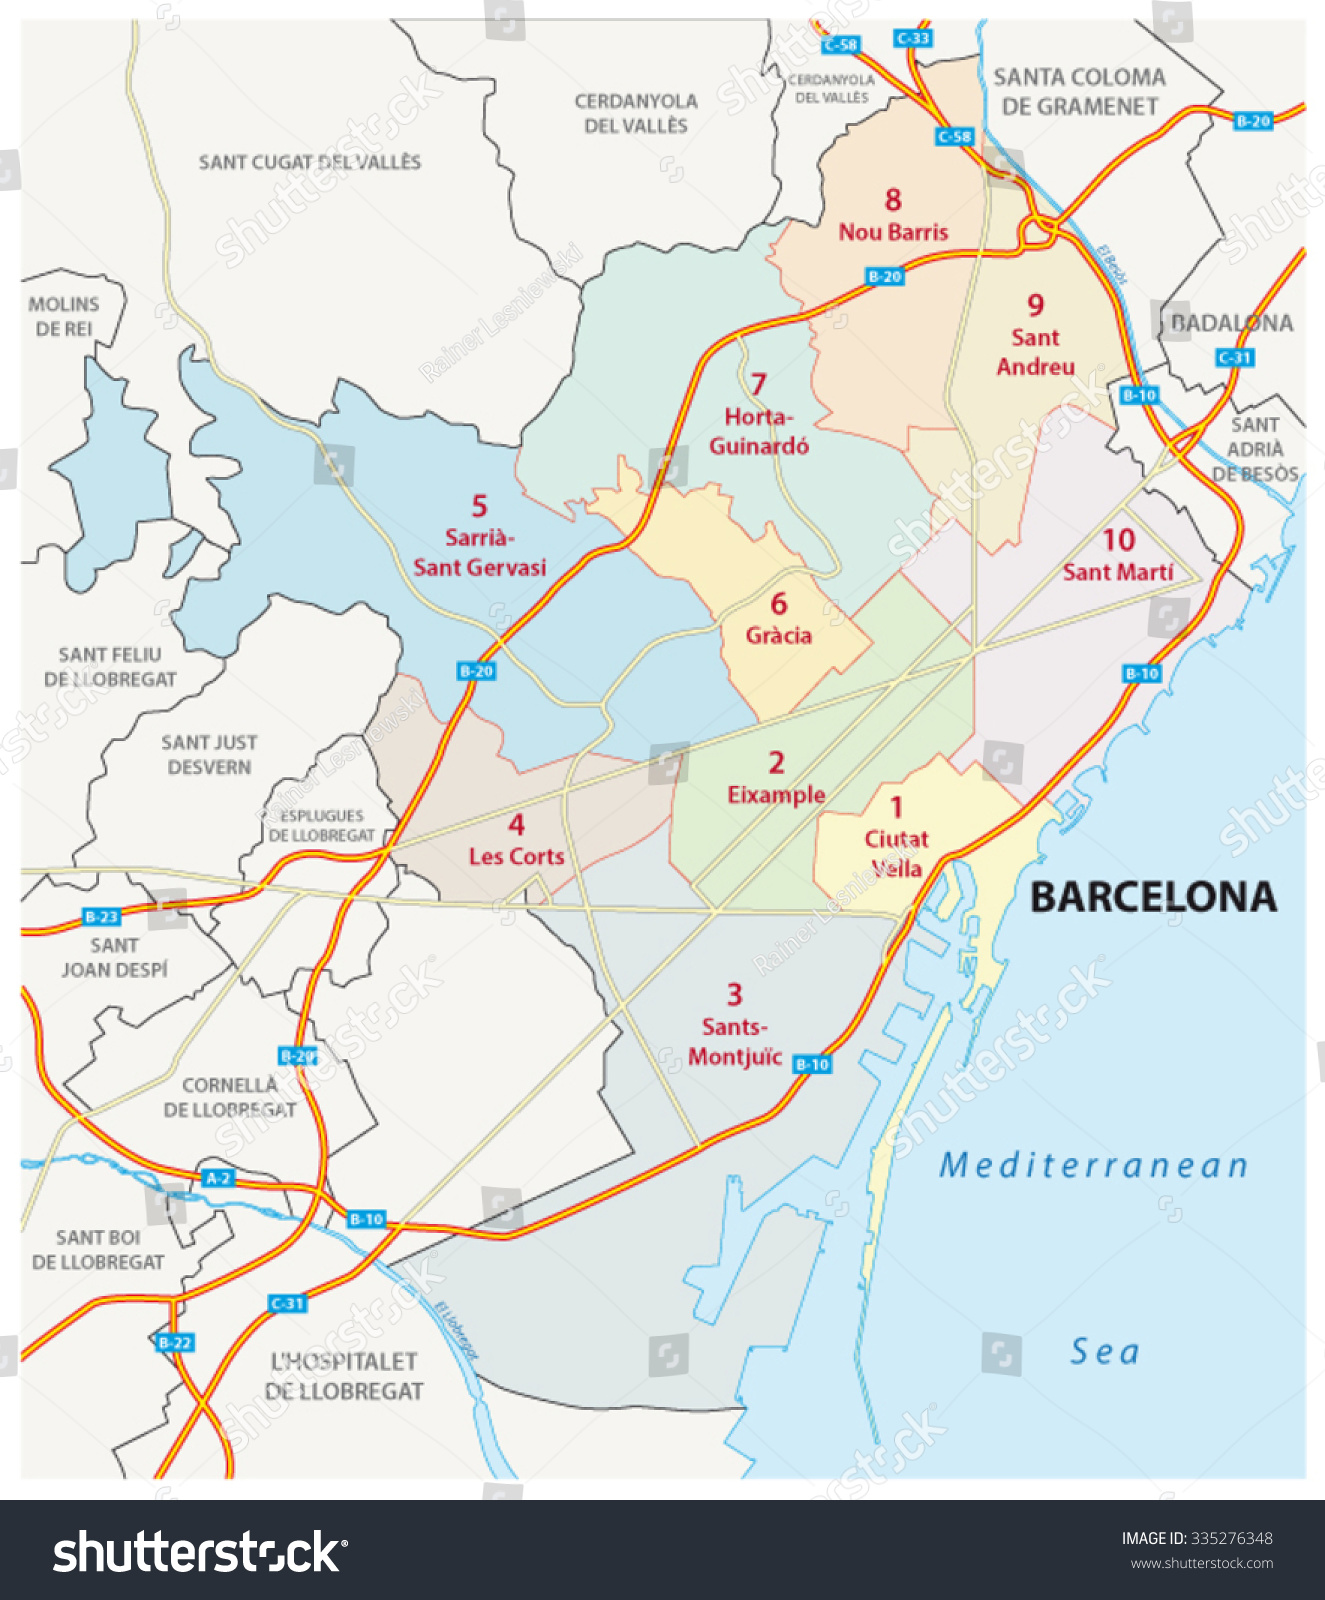 Barcelona Road Administrative Map Stock Vector 335276348 Shutterstock